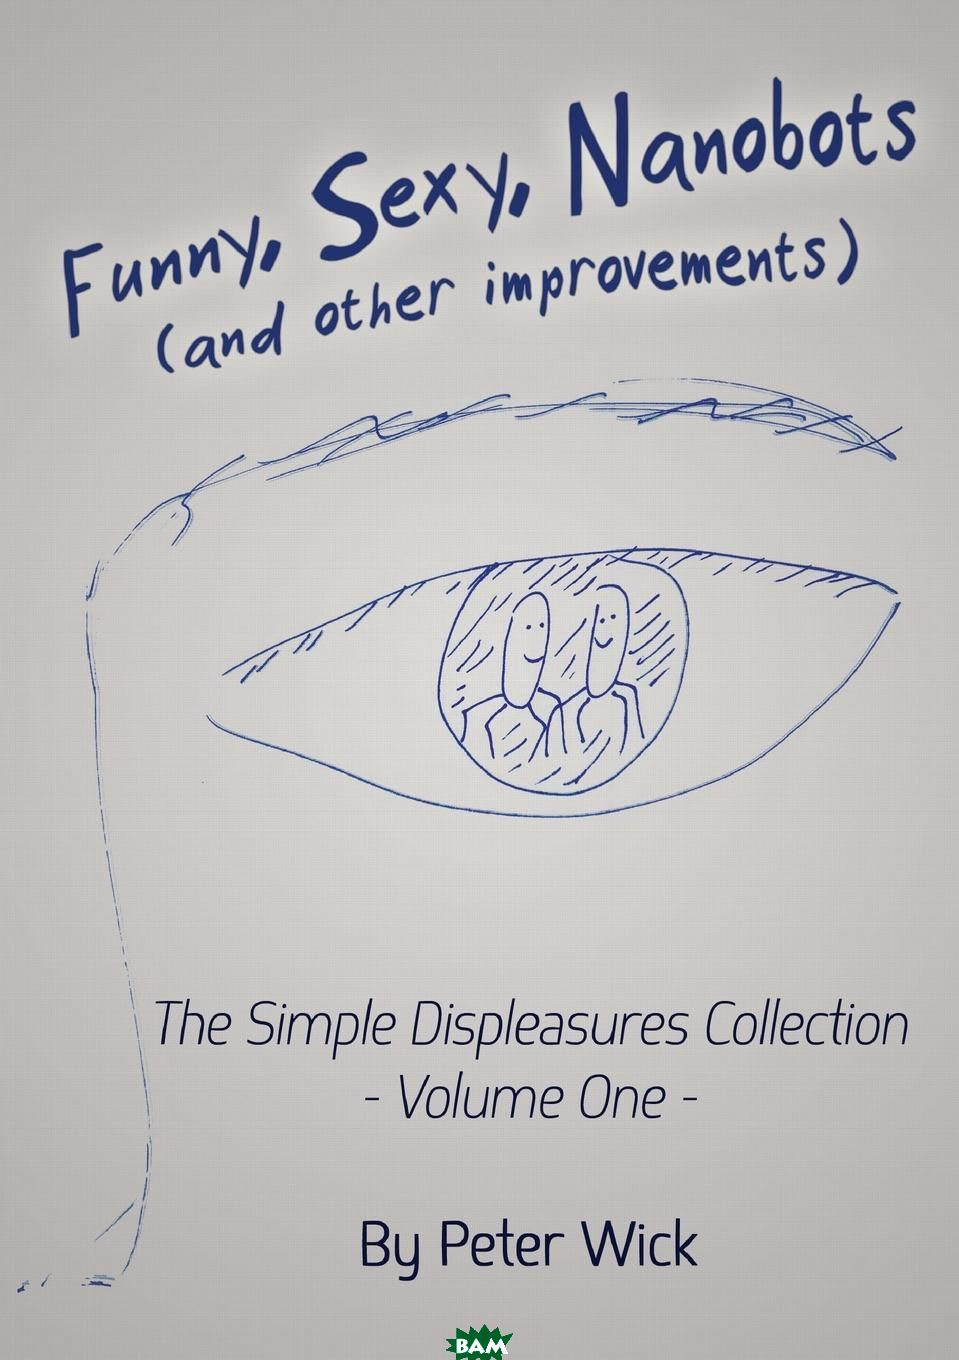 Funny, Sexy Nanobots (and other improvements). The Simple Displeasures collection - volume one